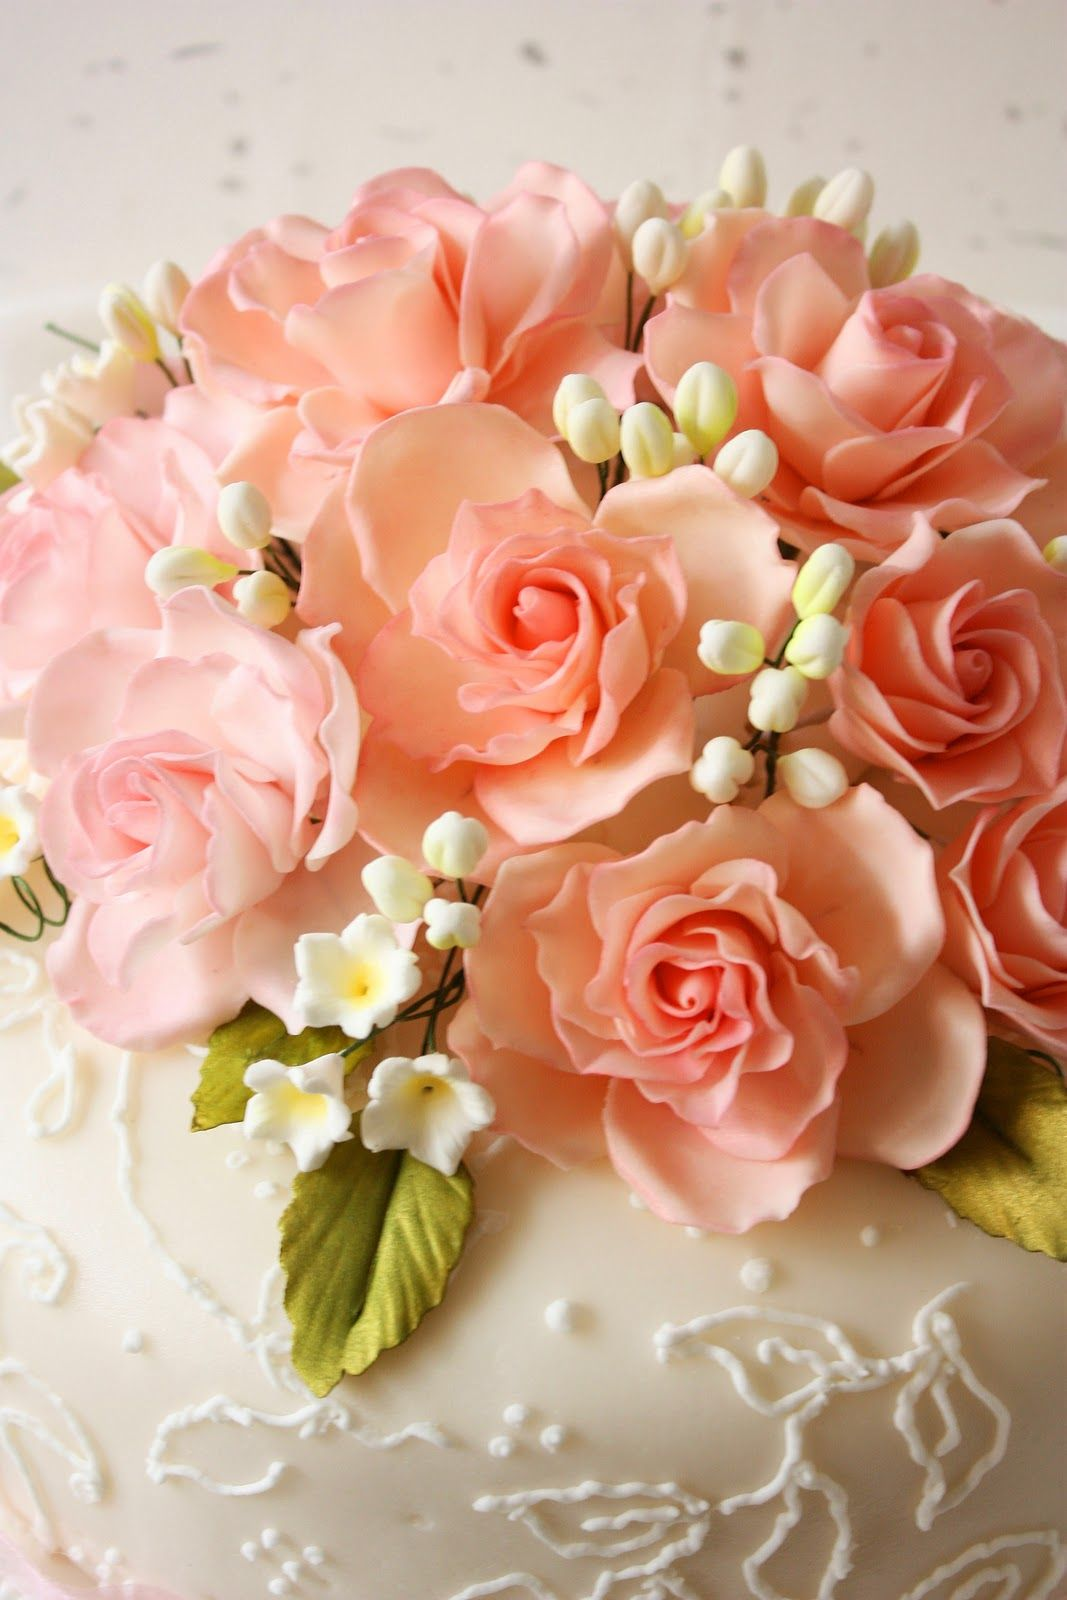 Pink Roses Wedding Cake Wedding Cake Roses Pink Rose Wedding Cake Fondant Flowers